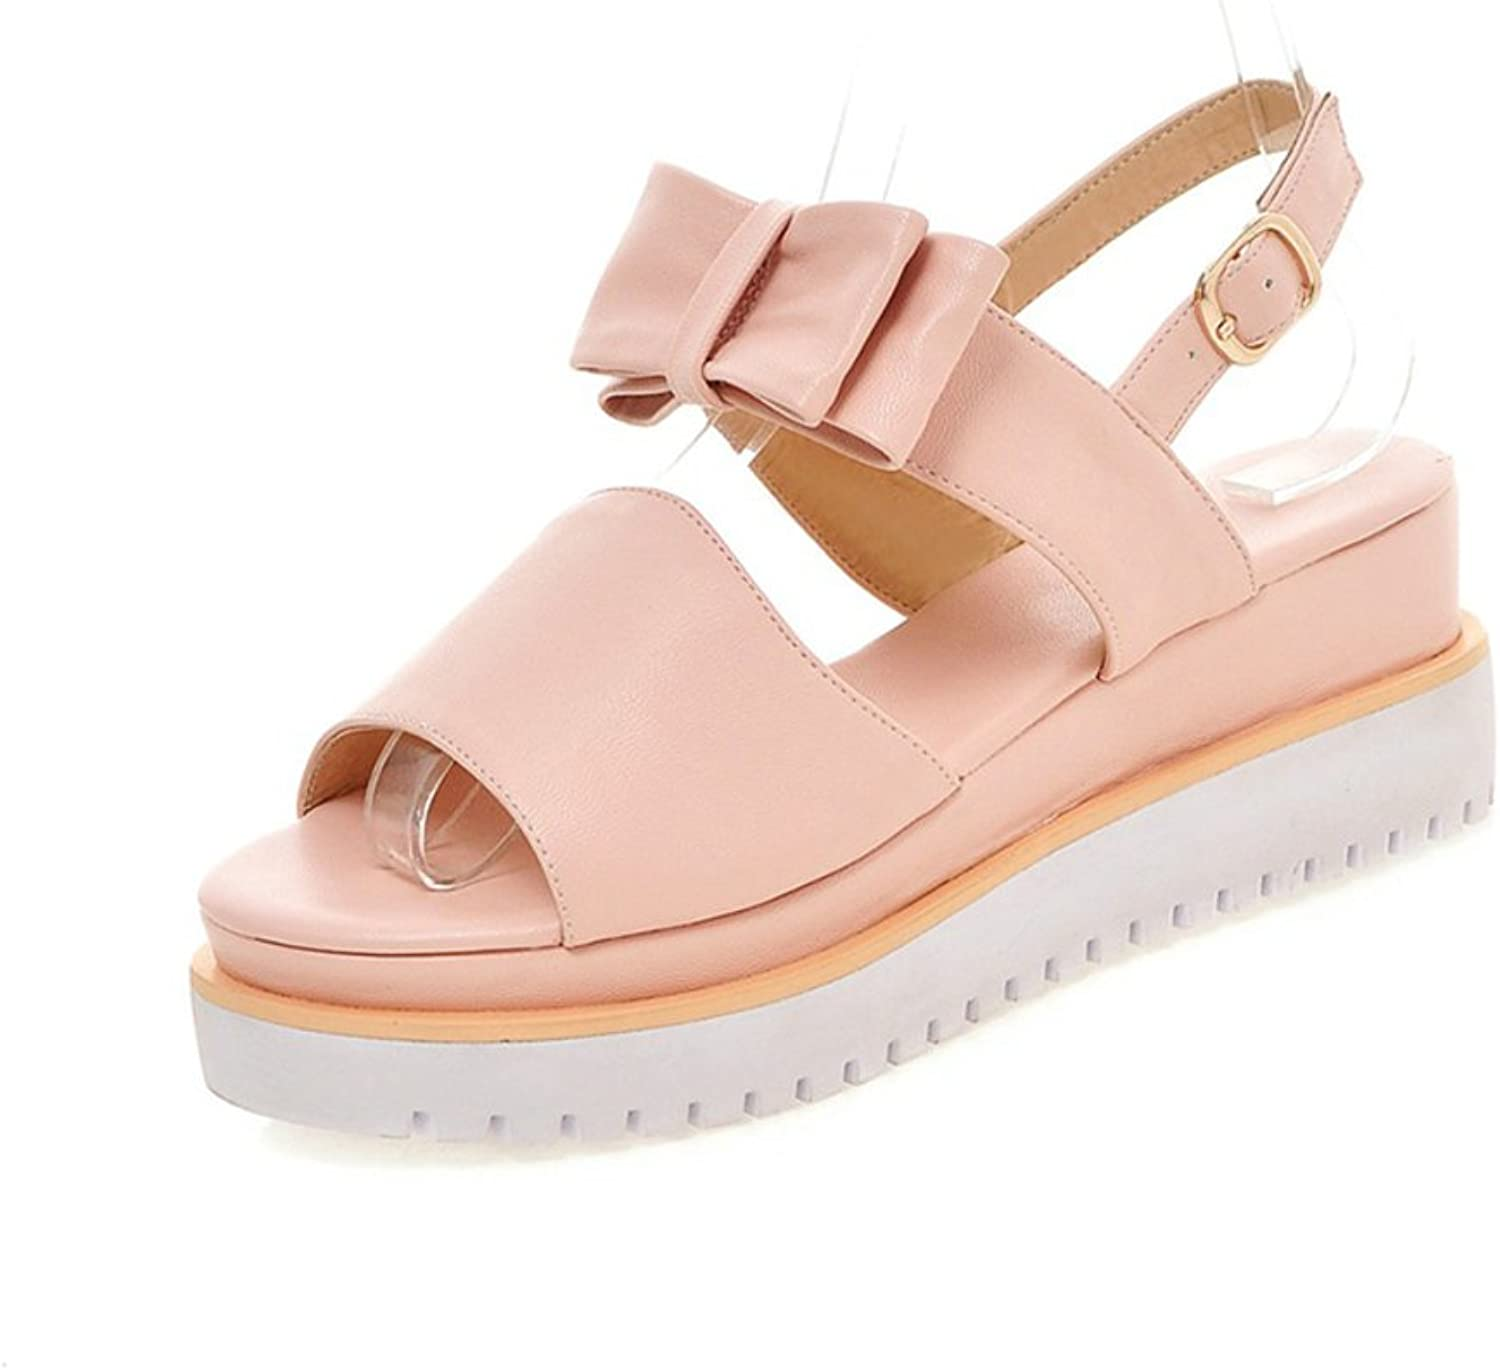 RHFDVGDS Lady sandals in the spring and summer Peep-toe wild sweet clean bow platform wedge Sandals